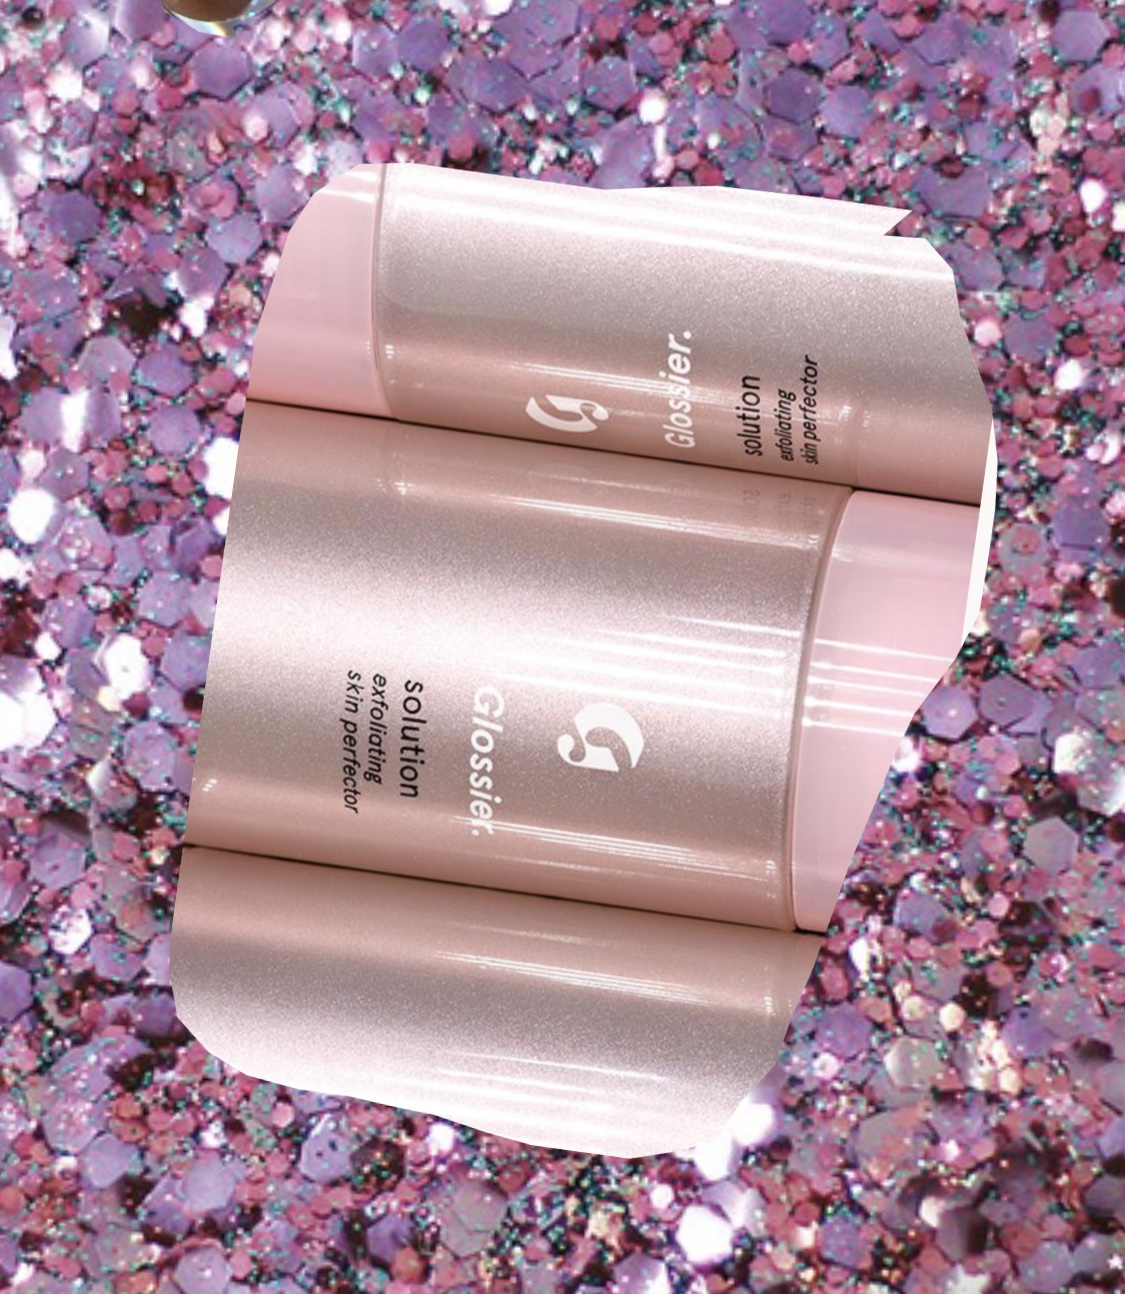 Glossier exfoliating and toning solution   This solution is truly a solution for people who have sensitive skin but still need to exfoliate. My skin gets red and dry very easily, but I still need something to detox my skin and clear out my pores. This product does exactly that. I also use the Glossier cotton pads to apply it evenly and cleanly.